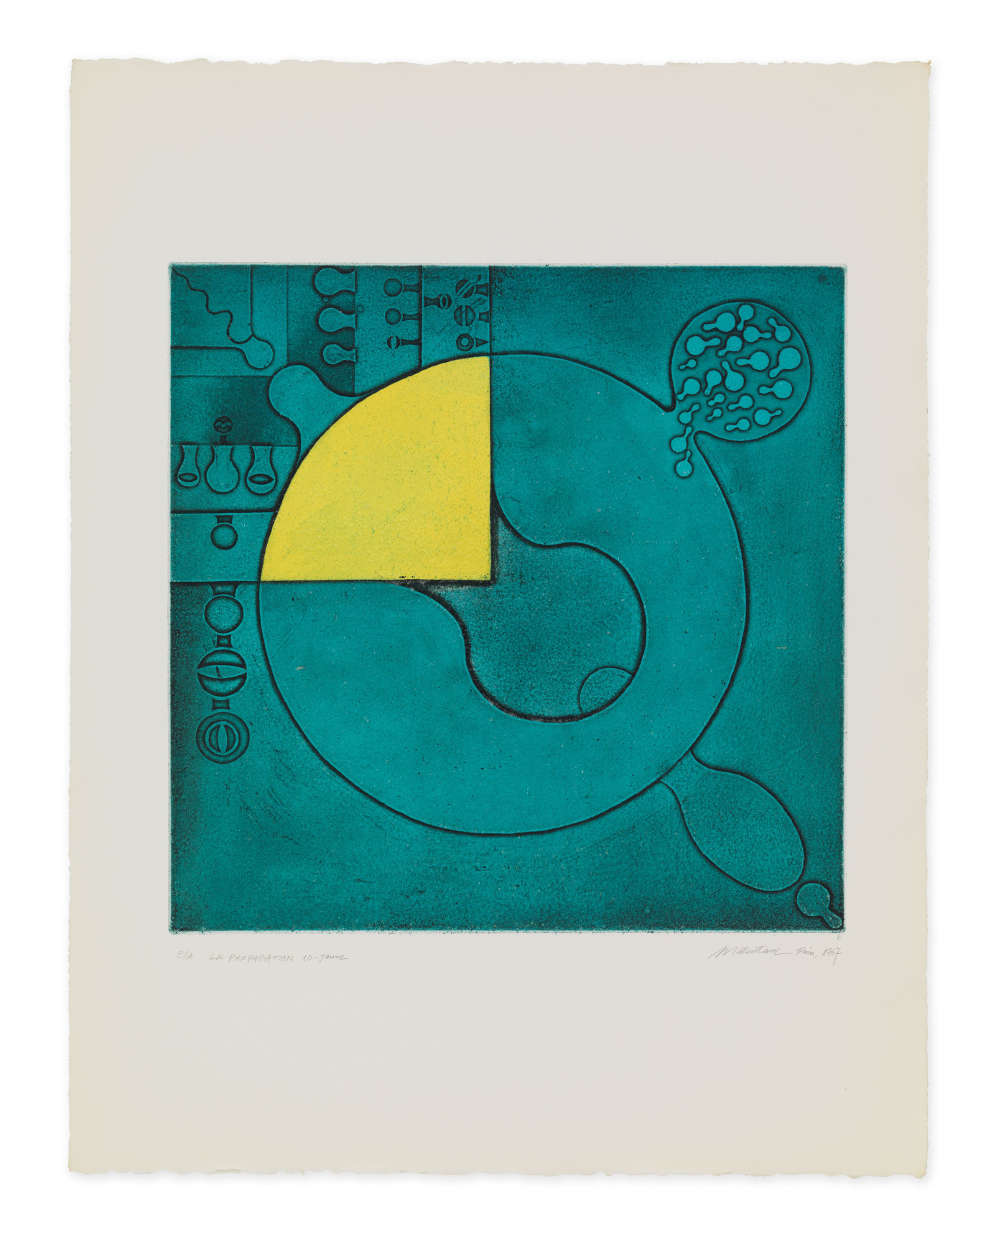 Takesada Matsutani, La Propagation-10-Jaune, 1967. Etching on BFK paper 65 x 50 cm / 25 5/8 x 19 5/8 in © Takesada Matsutani. Courtesy of the artist and Hauser & Wirth